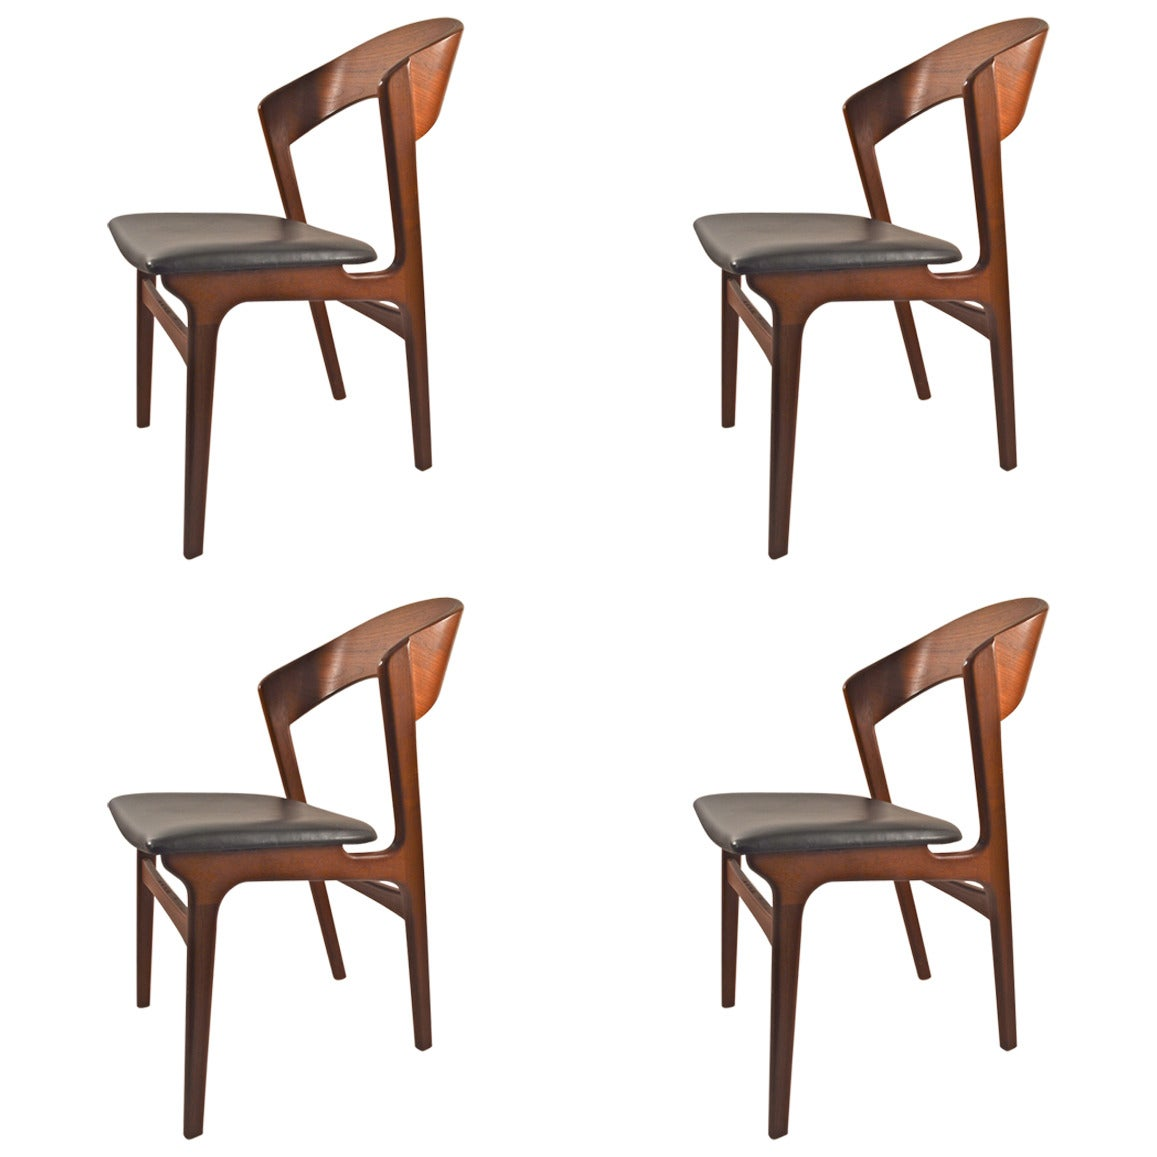 set of four danish modern teak dining chairs by randers. Black Bedroom Furniture Sets. Home Design Ideas